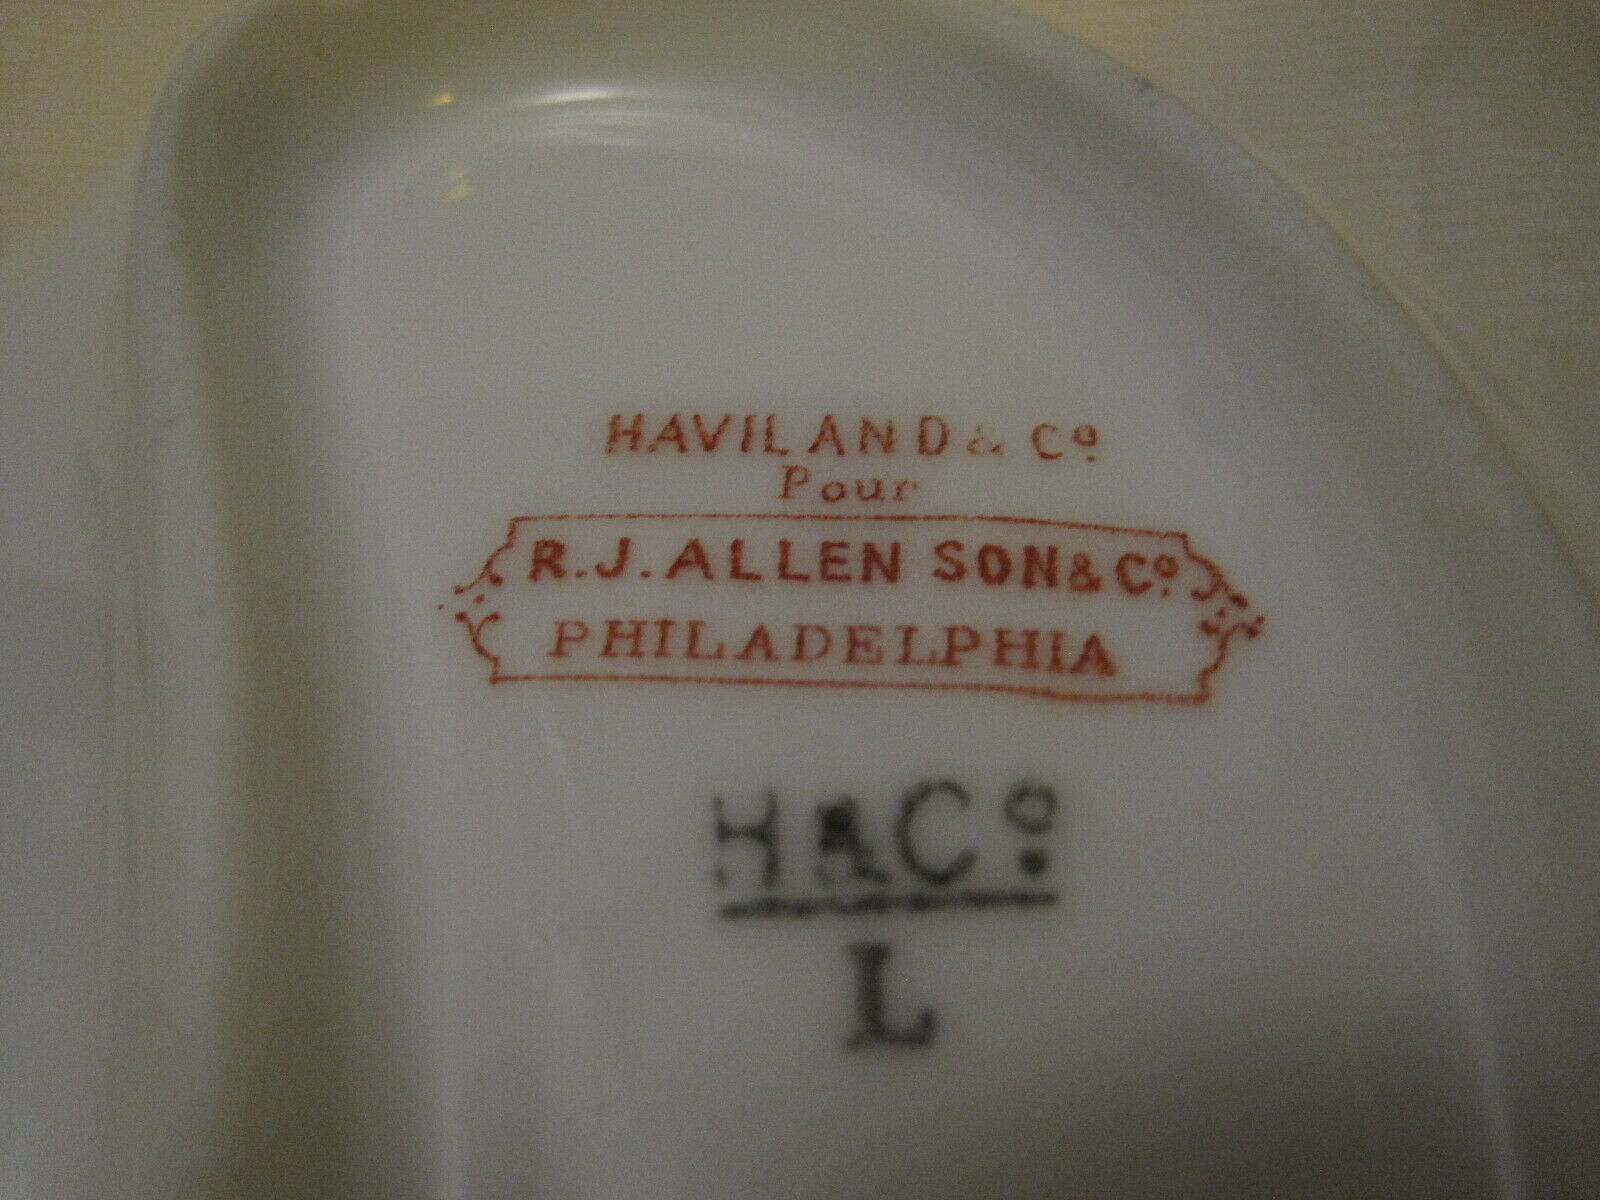 2 Haviland Co. Limoges Fish Bone Plates Made In France For R J Allen Son Co - $30.00